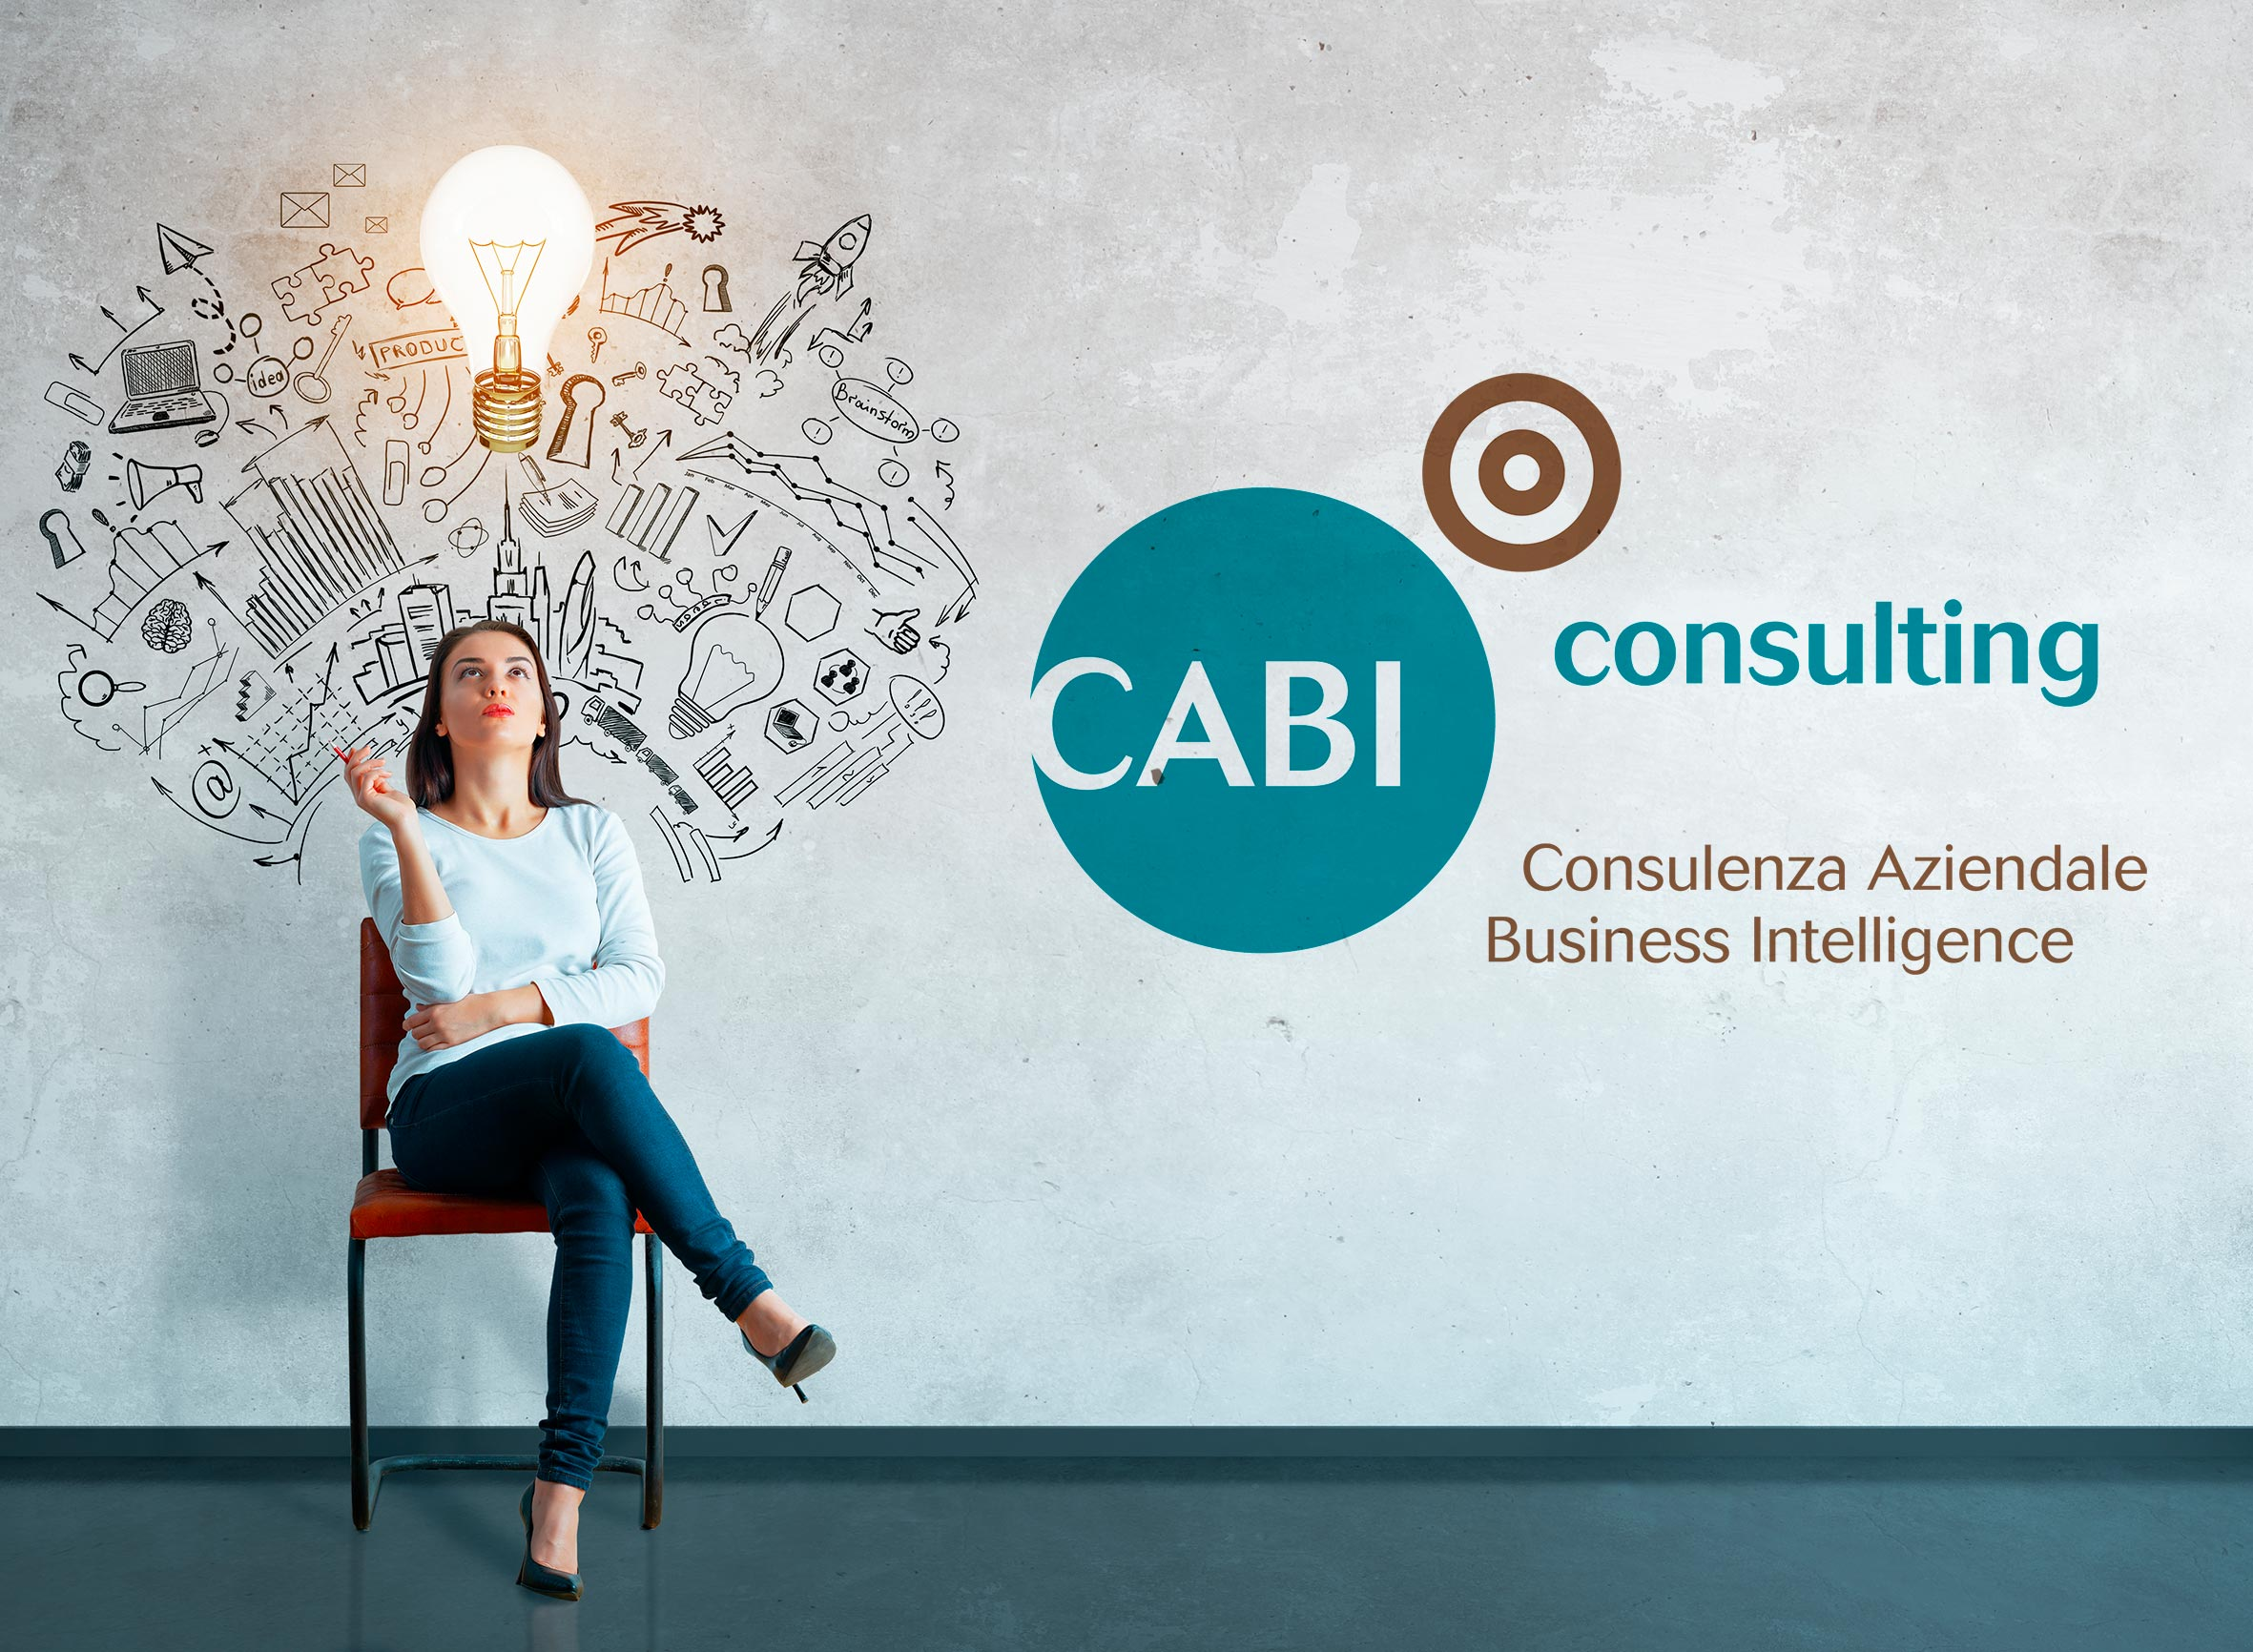 SC-Studio-Chiesa-Communication_Servizi-Cabi-Consulting_02